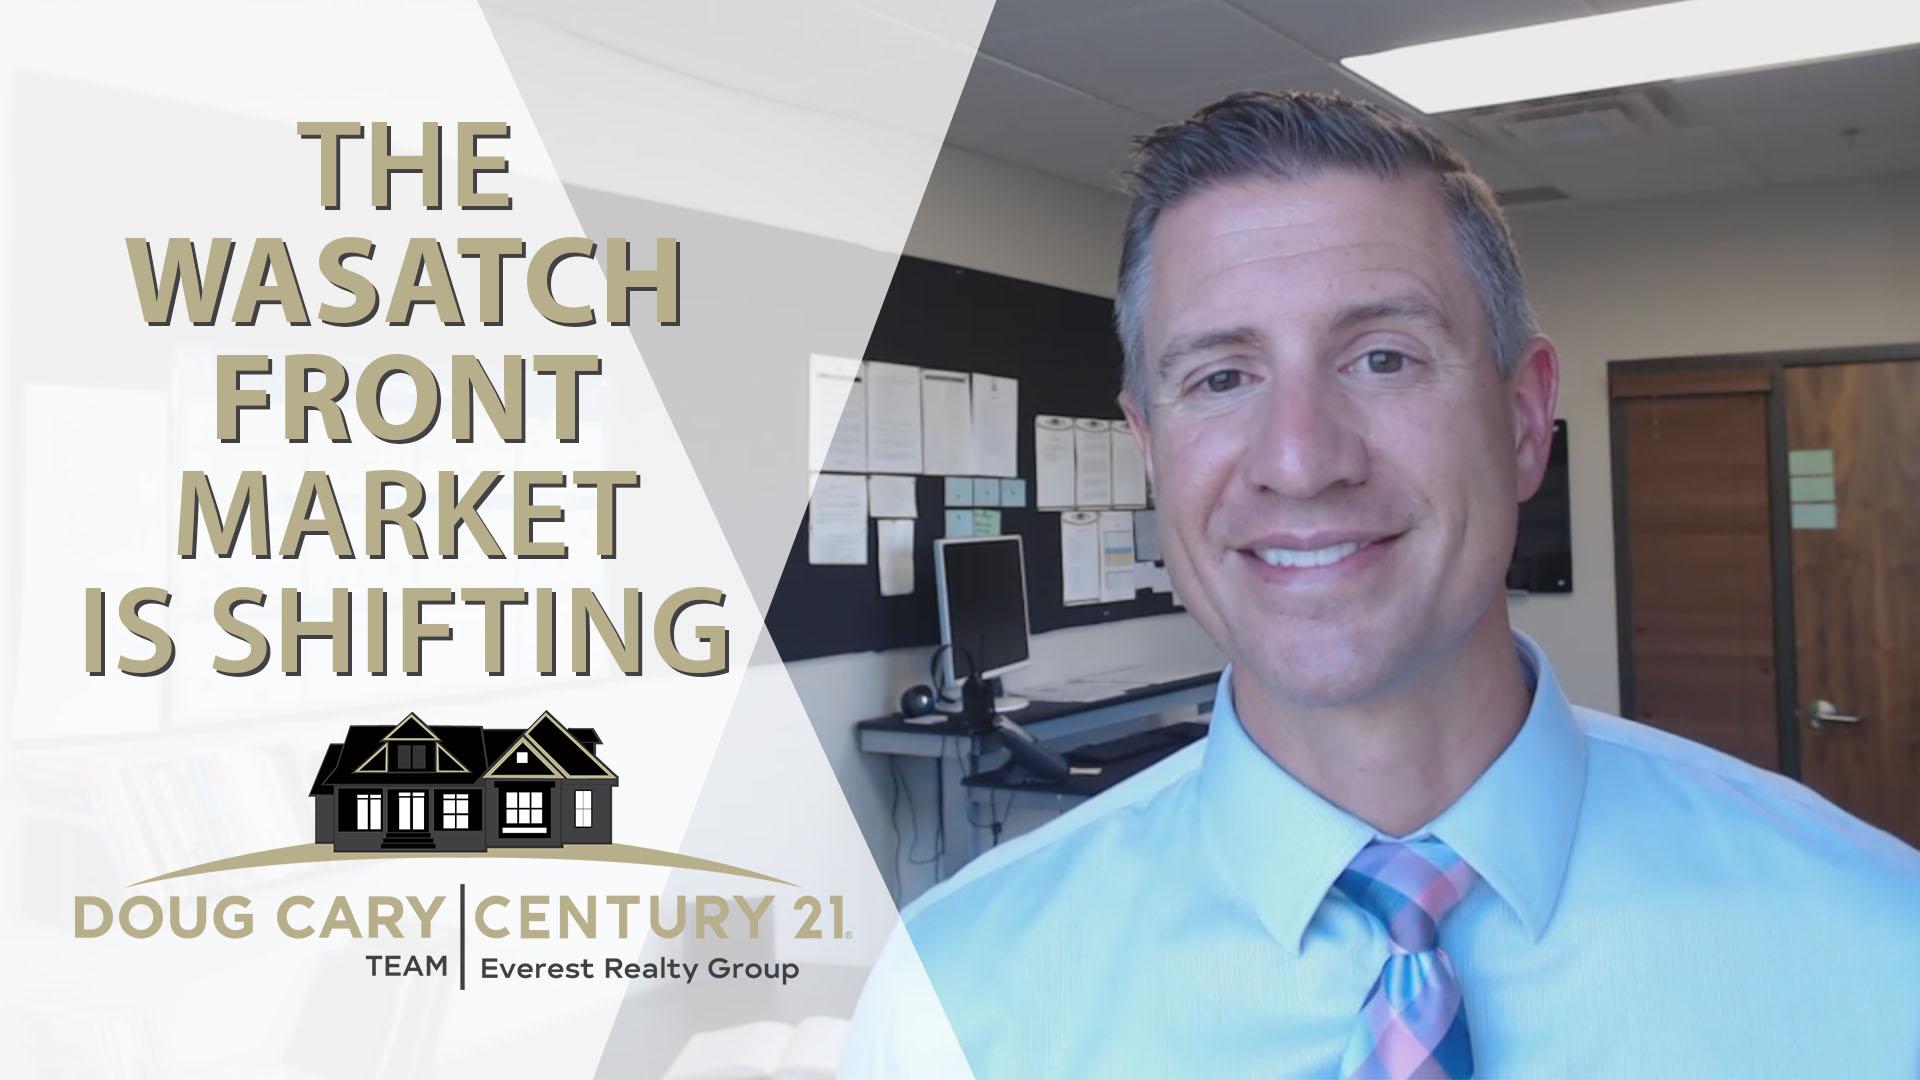 What's Happening in our Wasatch Front Market?